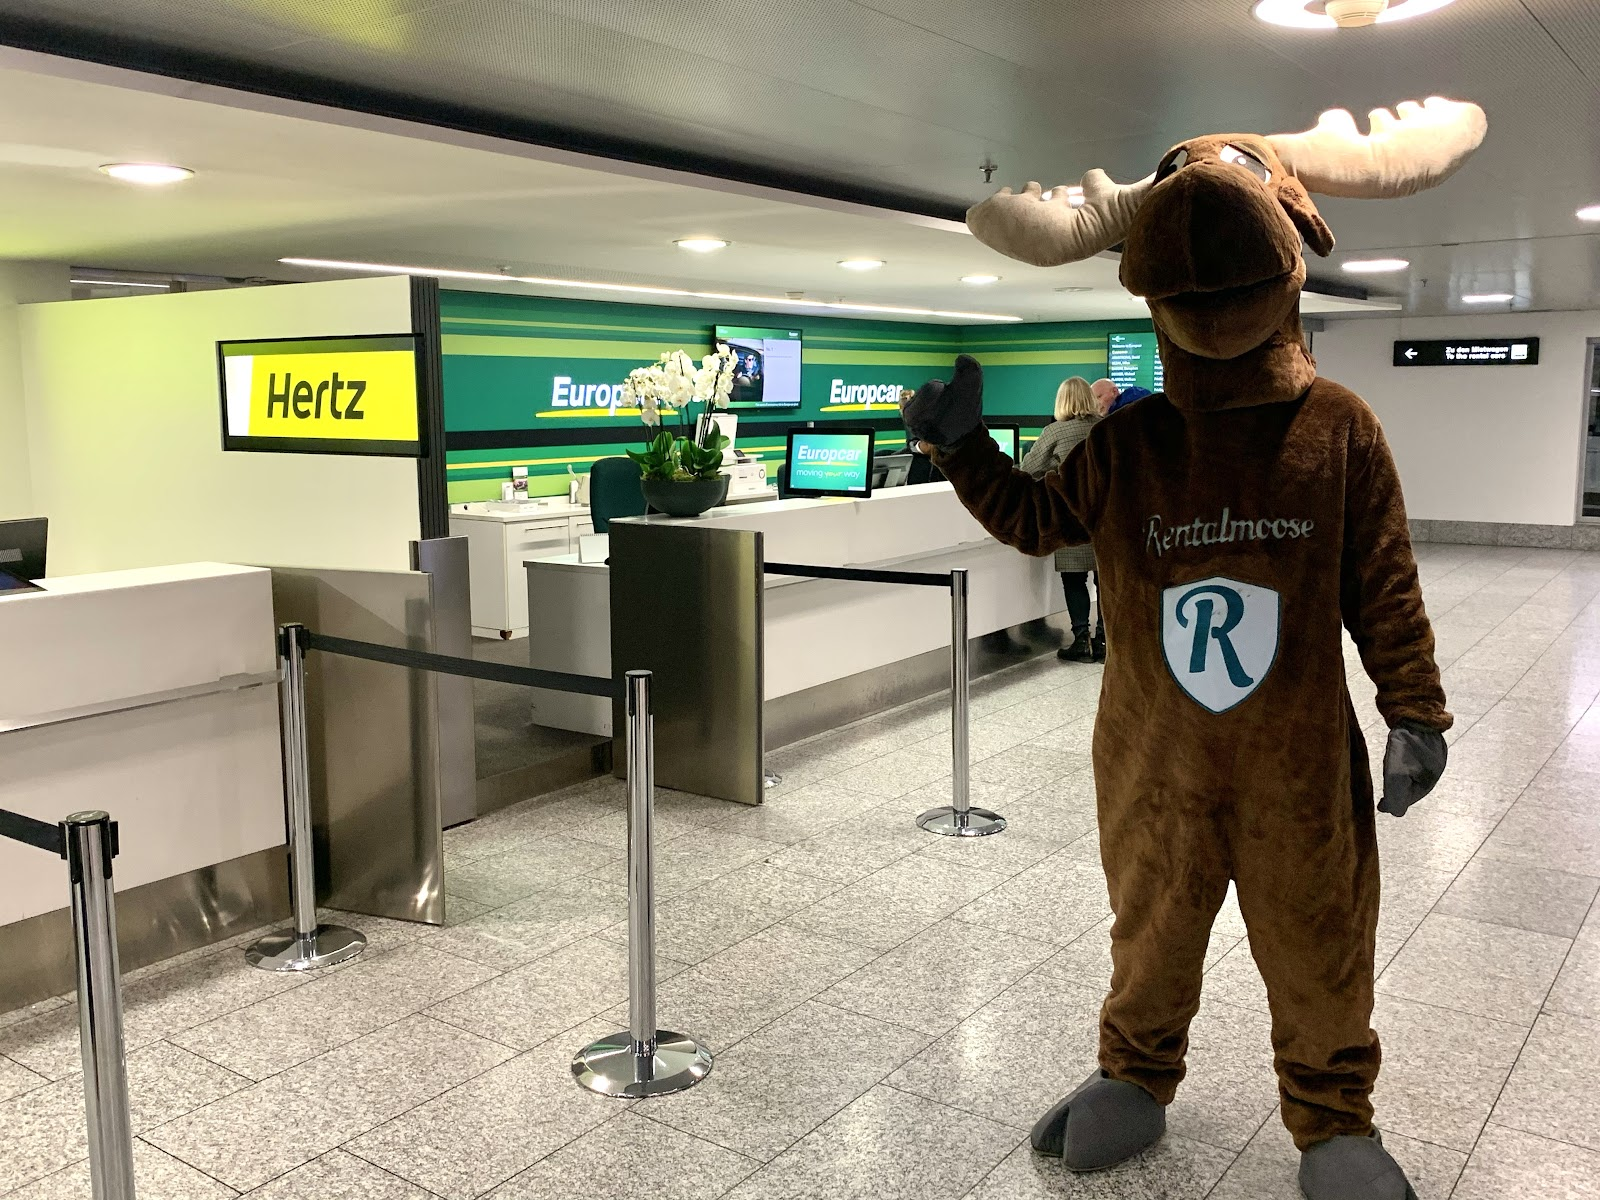 Rentalmoose mascot posing, right thumbs up, in front of Europcar and Hertz car rental counters. Rental Moose is a global car rental broker which will help you get the best deal on your next rental car.